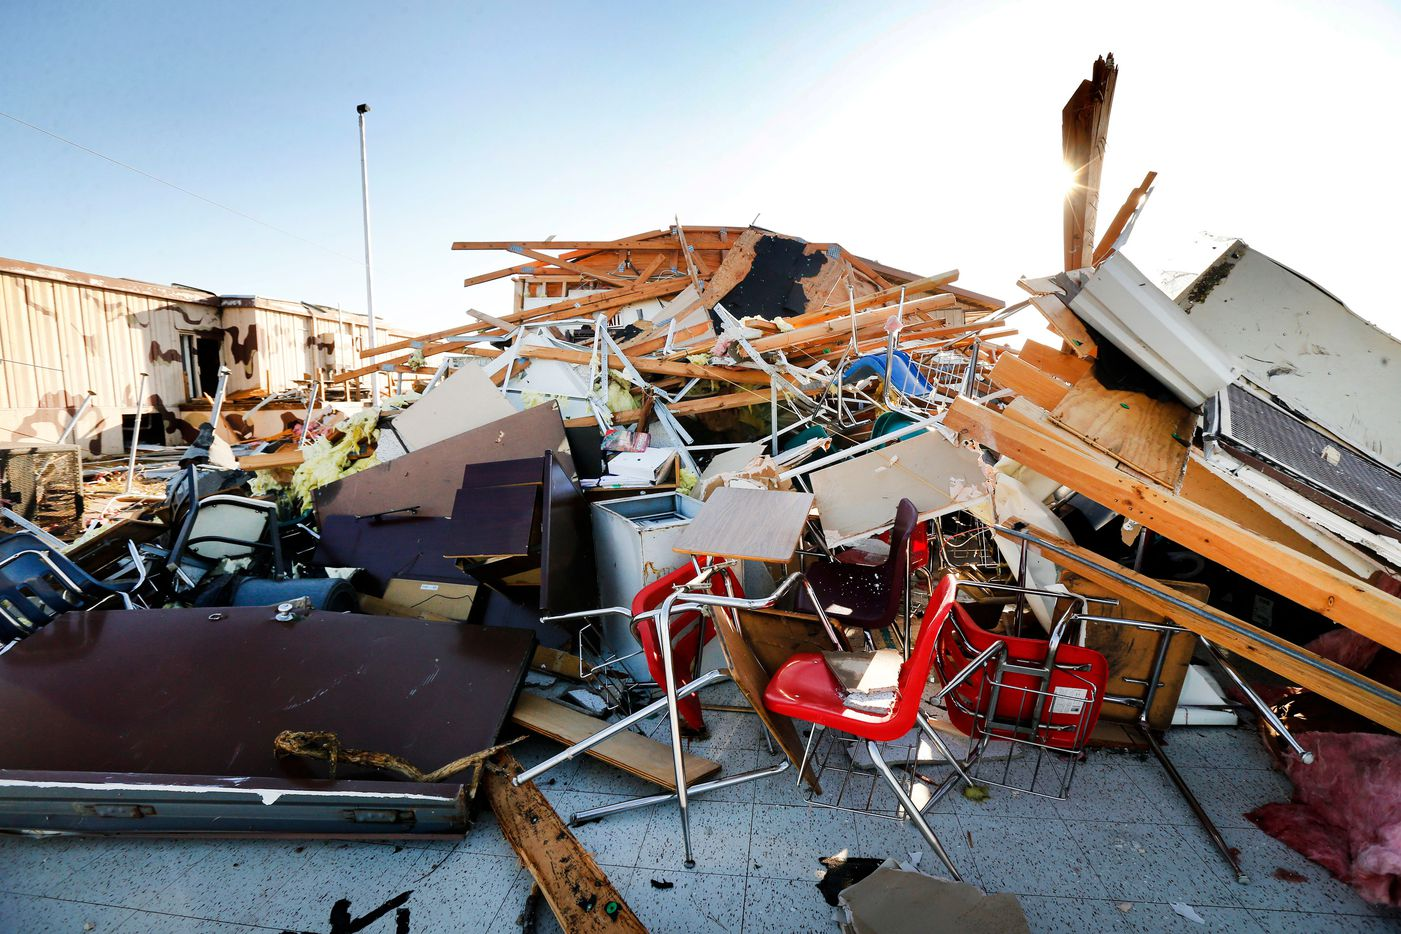 A portable building with classrooms at Cary Jr. High School in Dallas was totally destroyed by a tornado, Monday, October 21, 2019. (Tom Fox/The Dallas Morning News)